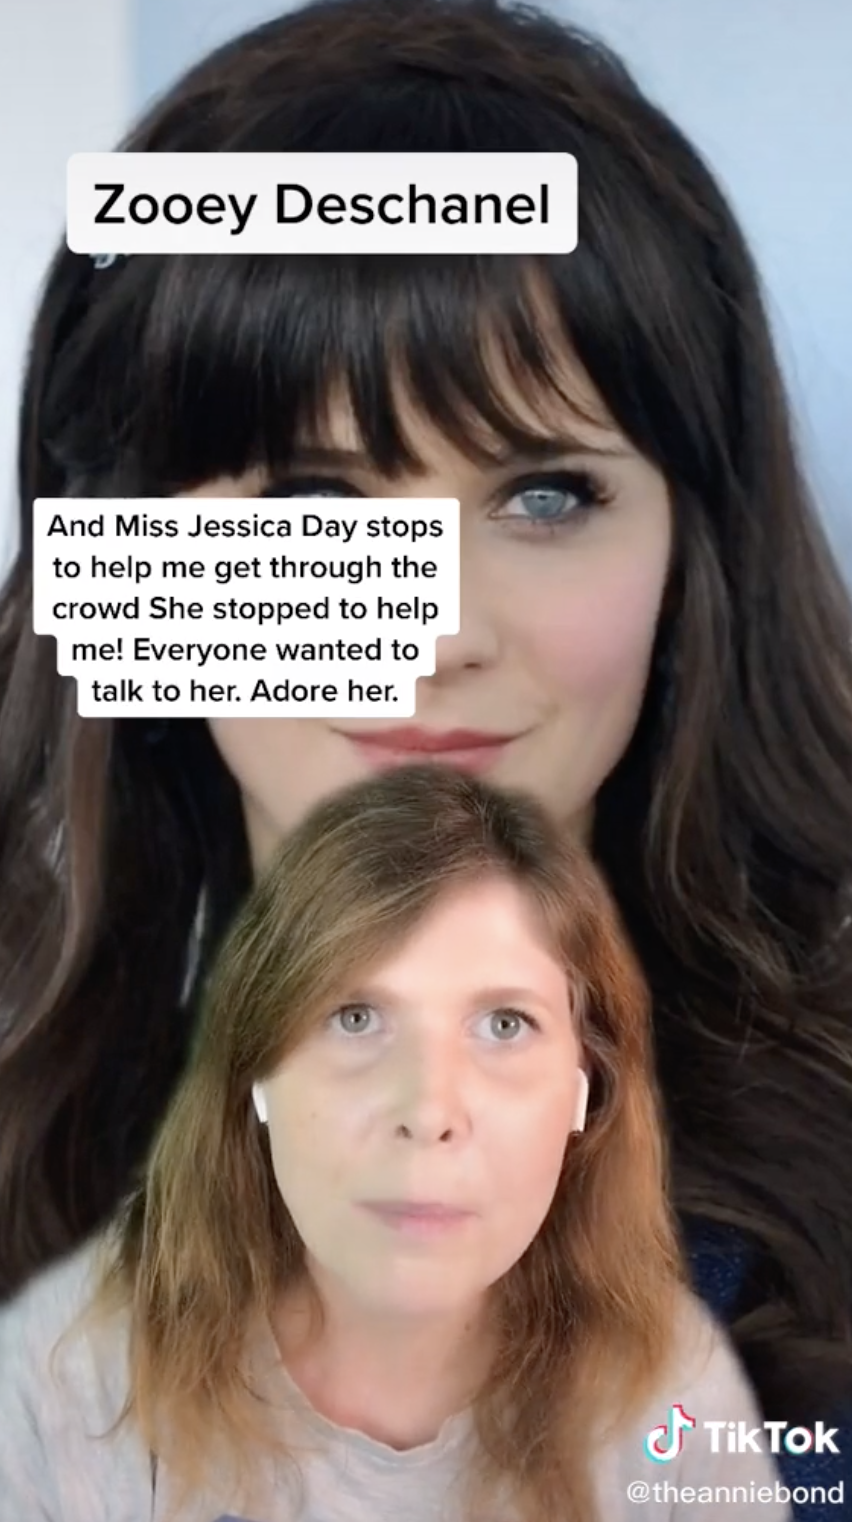 """""""Miss Jessica Day stops to help me get through the crowd. Everyone wanted to talk to her. Adore her"""""""